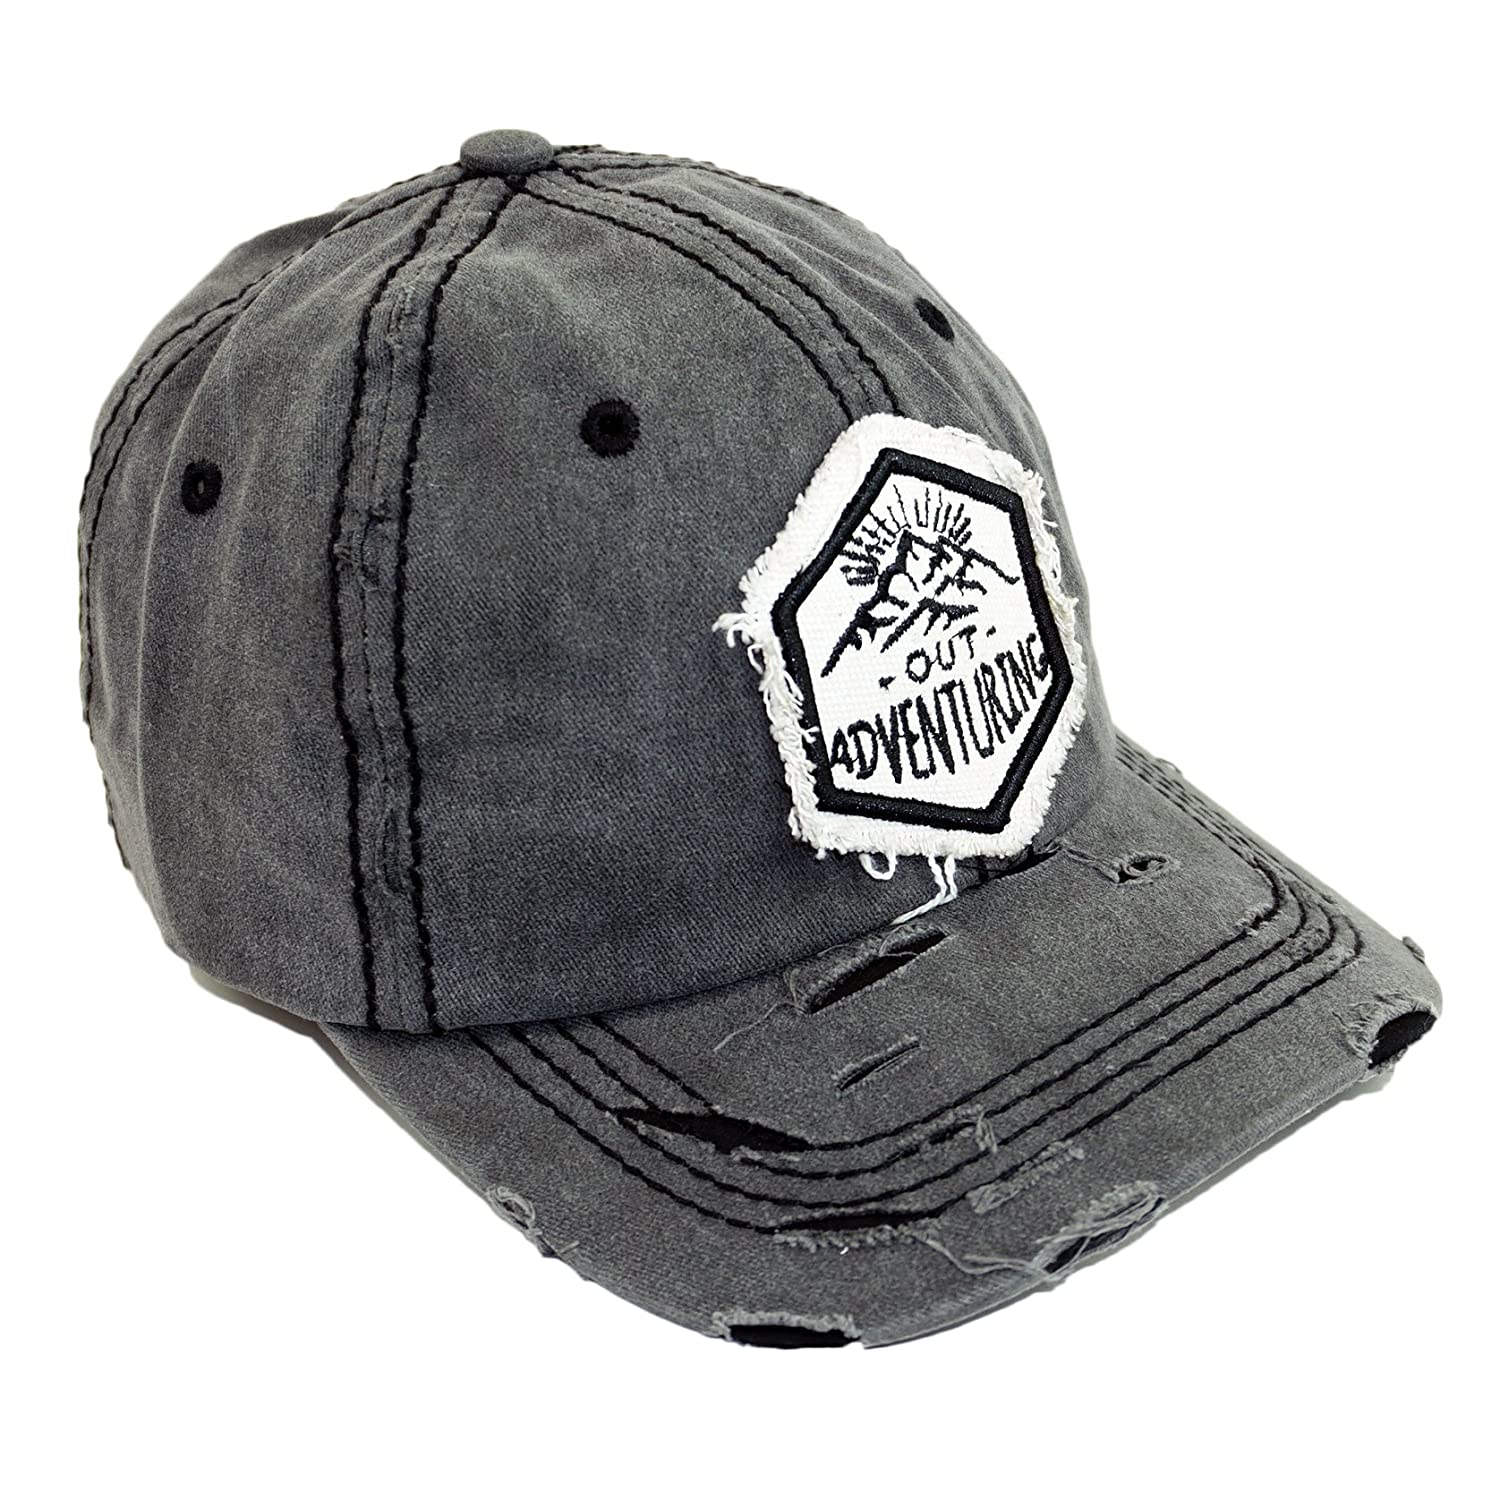 Out Adventure Embroidery Vintage Hat Adjustable Mountin Patch Baseball Cap  (Black) at Amazon Men s Clothing store  828e6ac100b